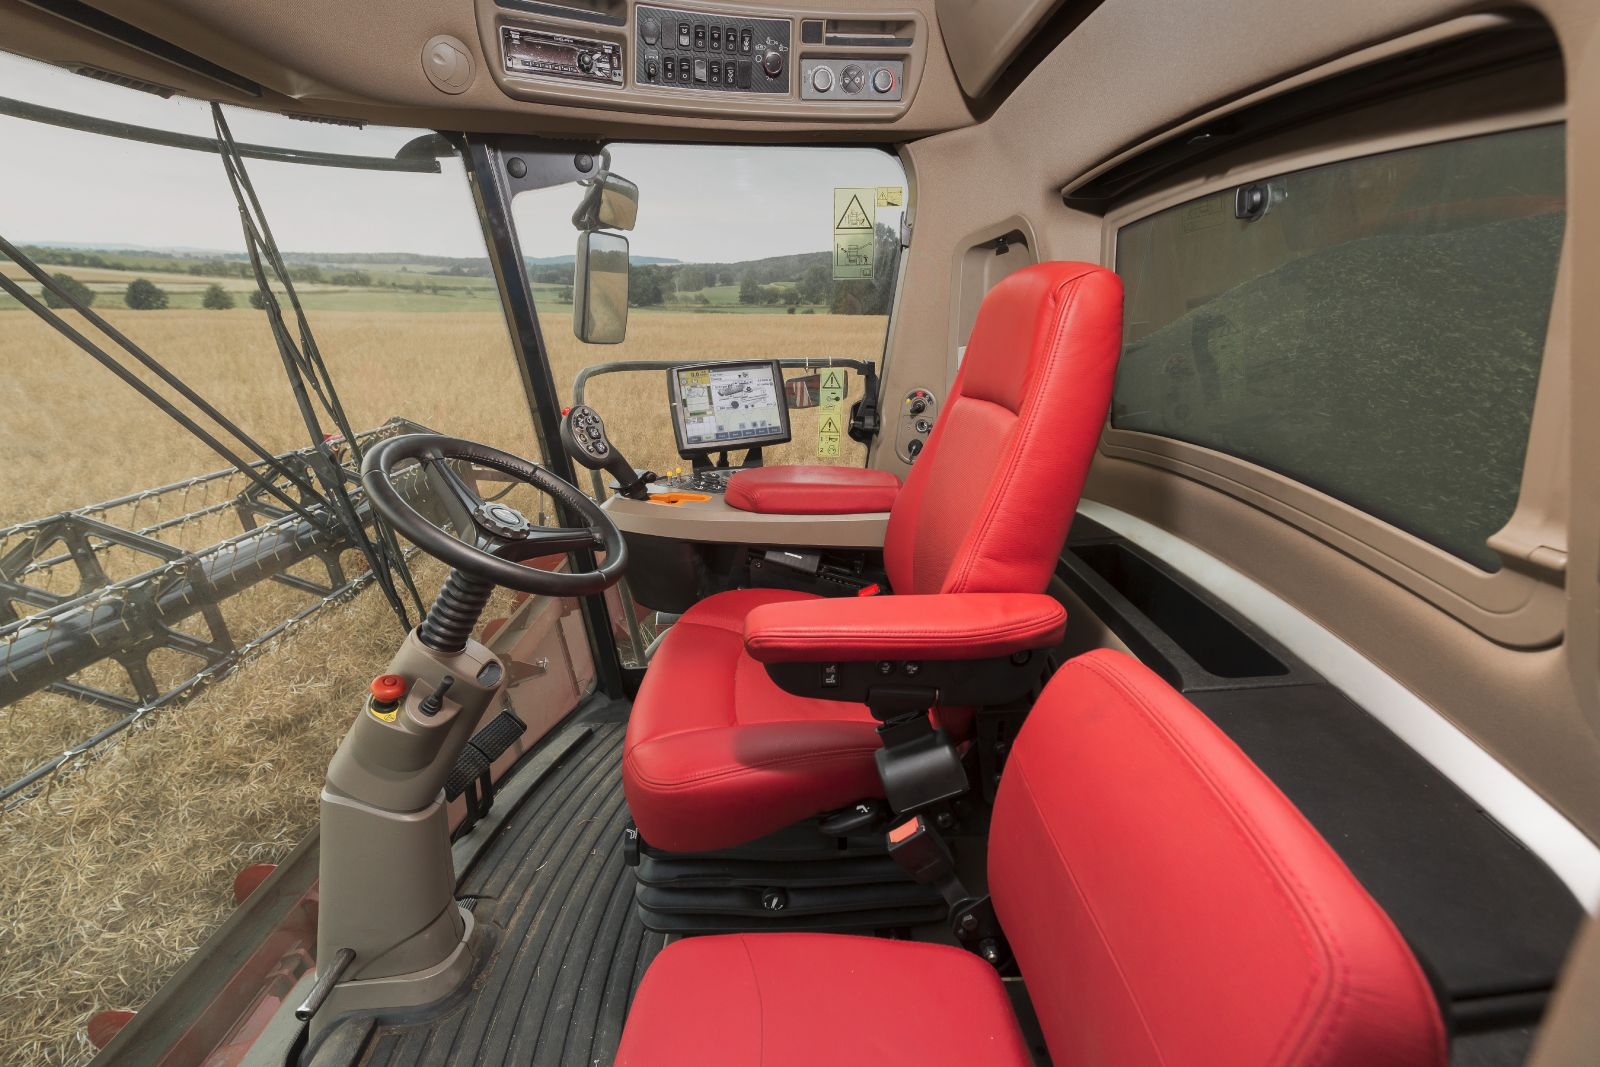 The new Case IH Axial-Flow 250 combine harvesters with a new